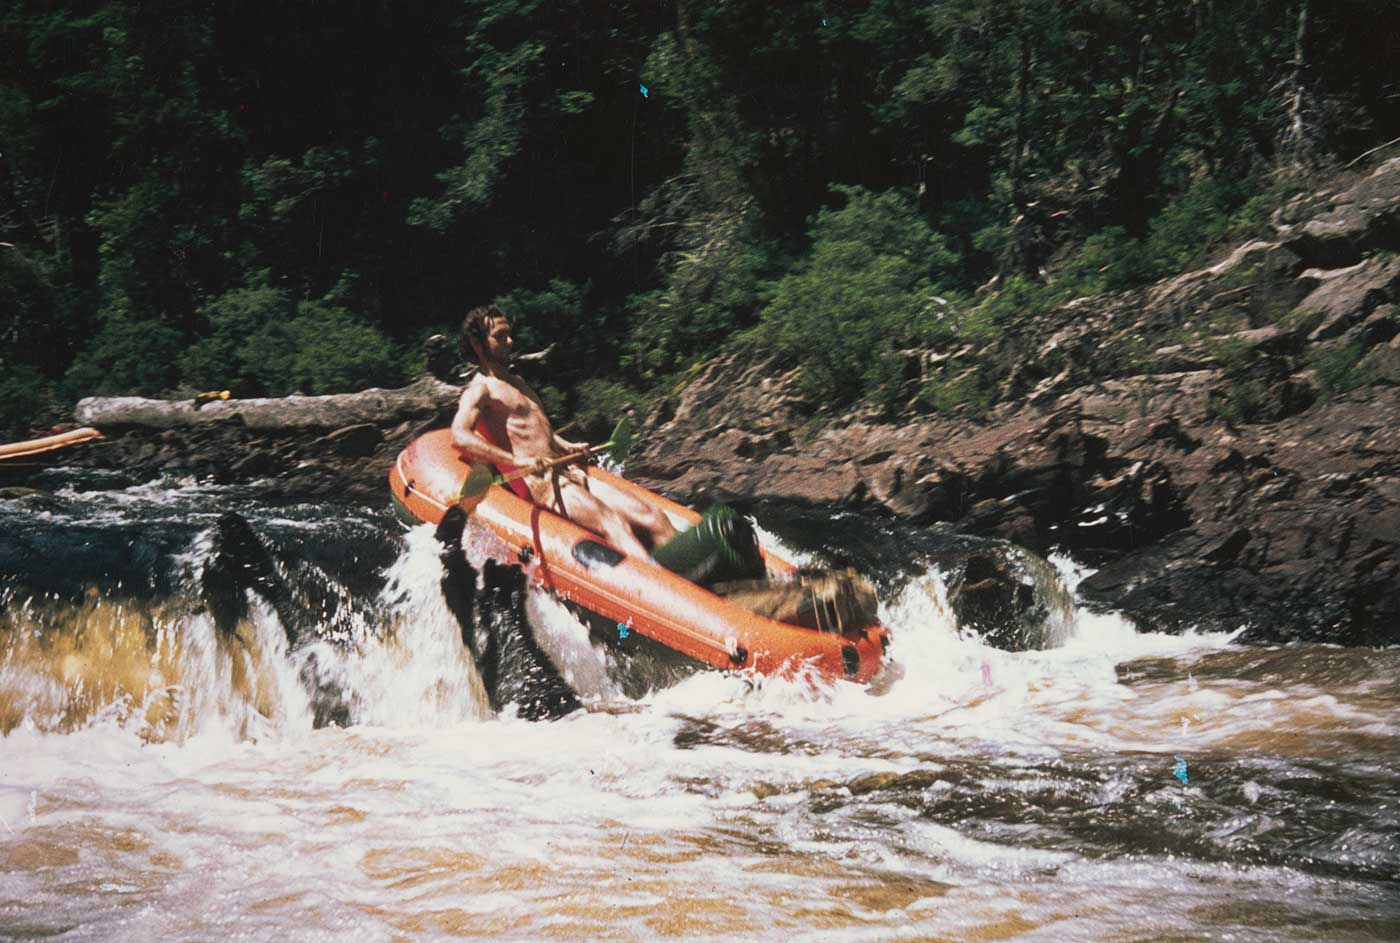 A man in a raft leans back as he negotiates the rapids in a river. - click to view larger image